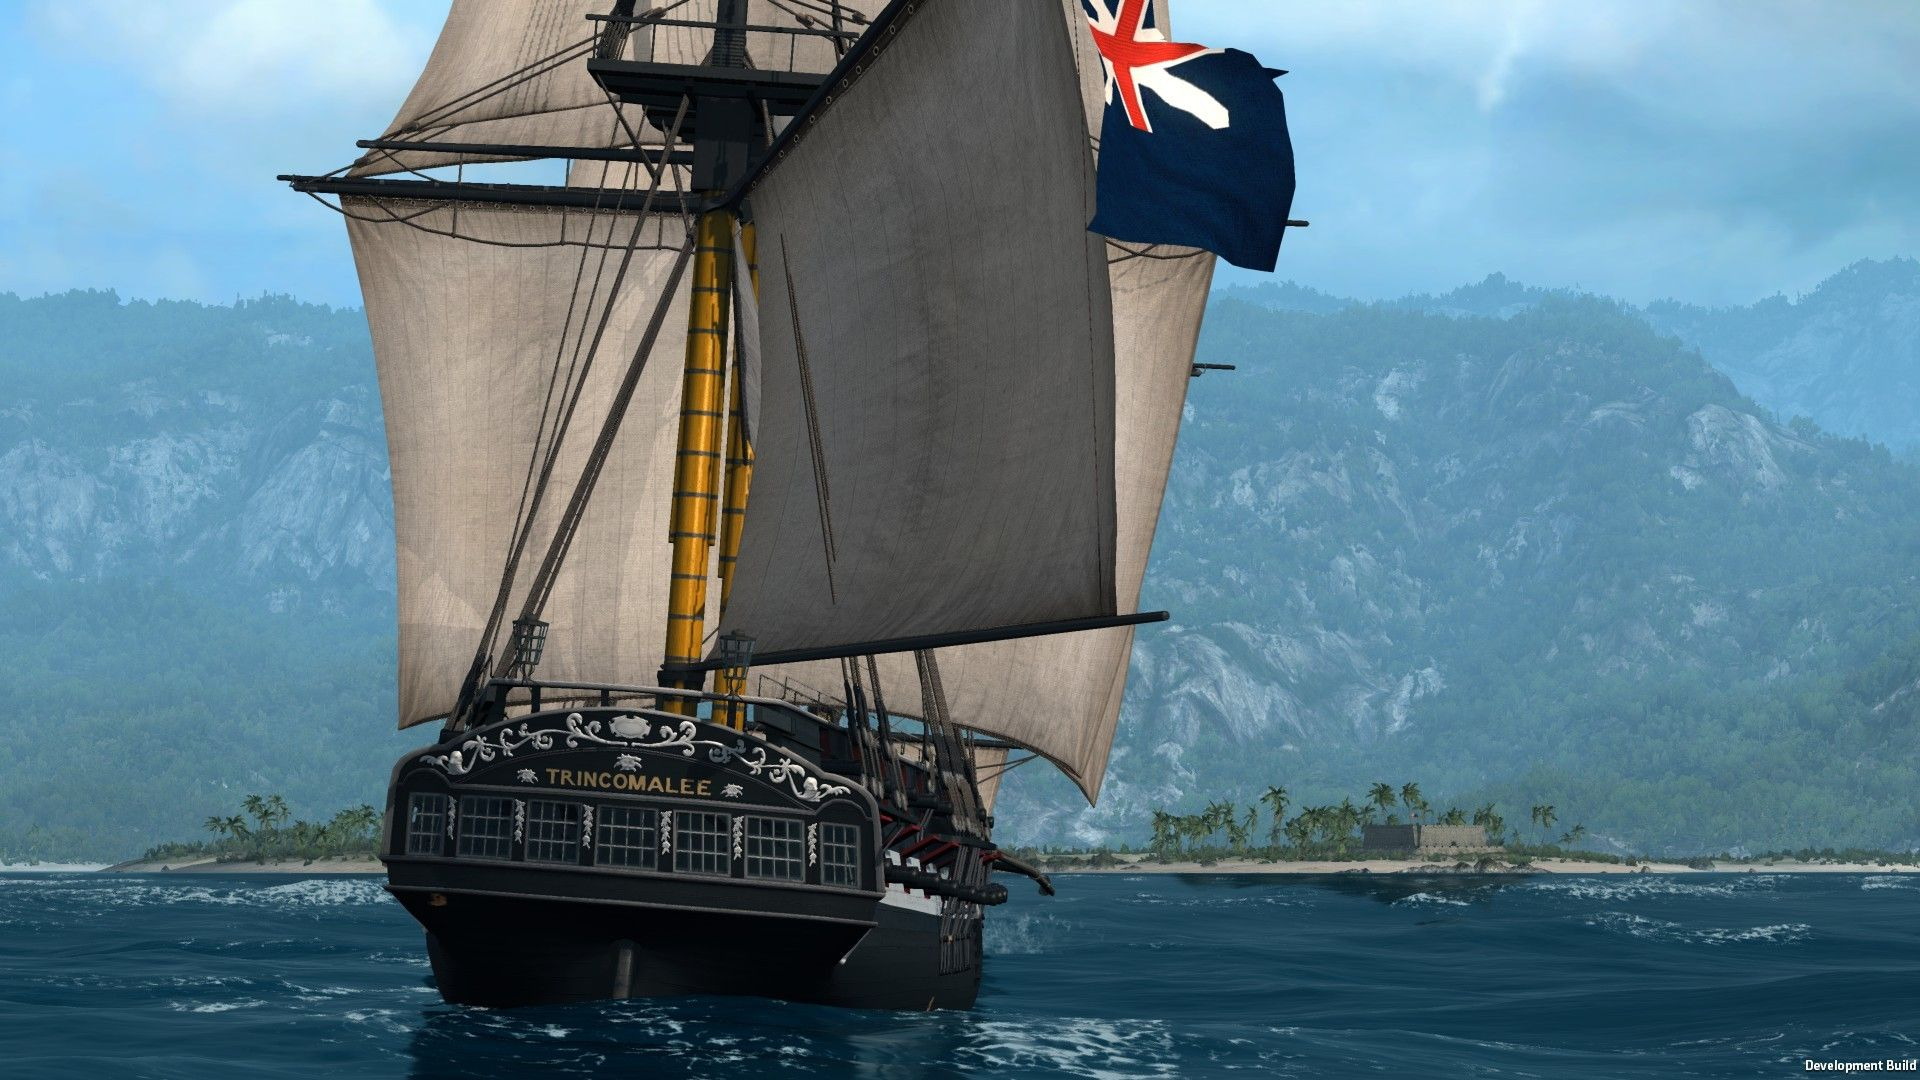 Naval Action - Trincomalee